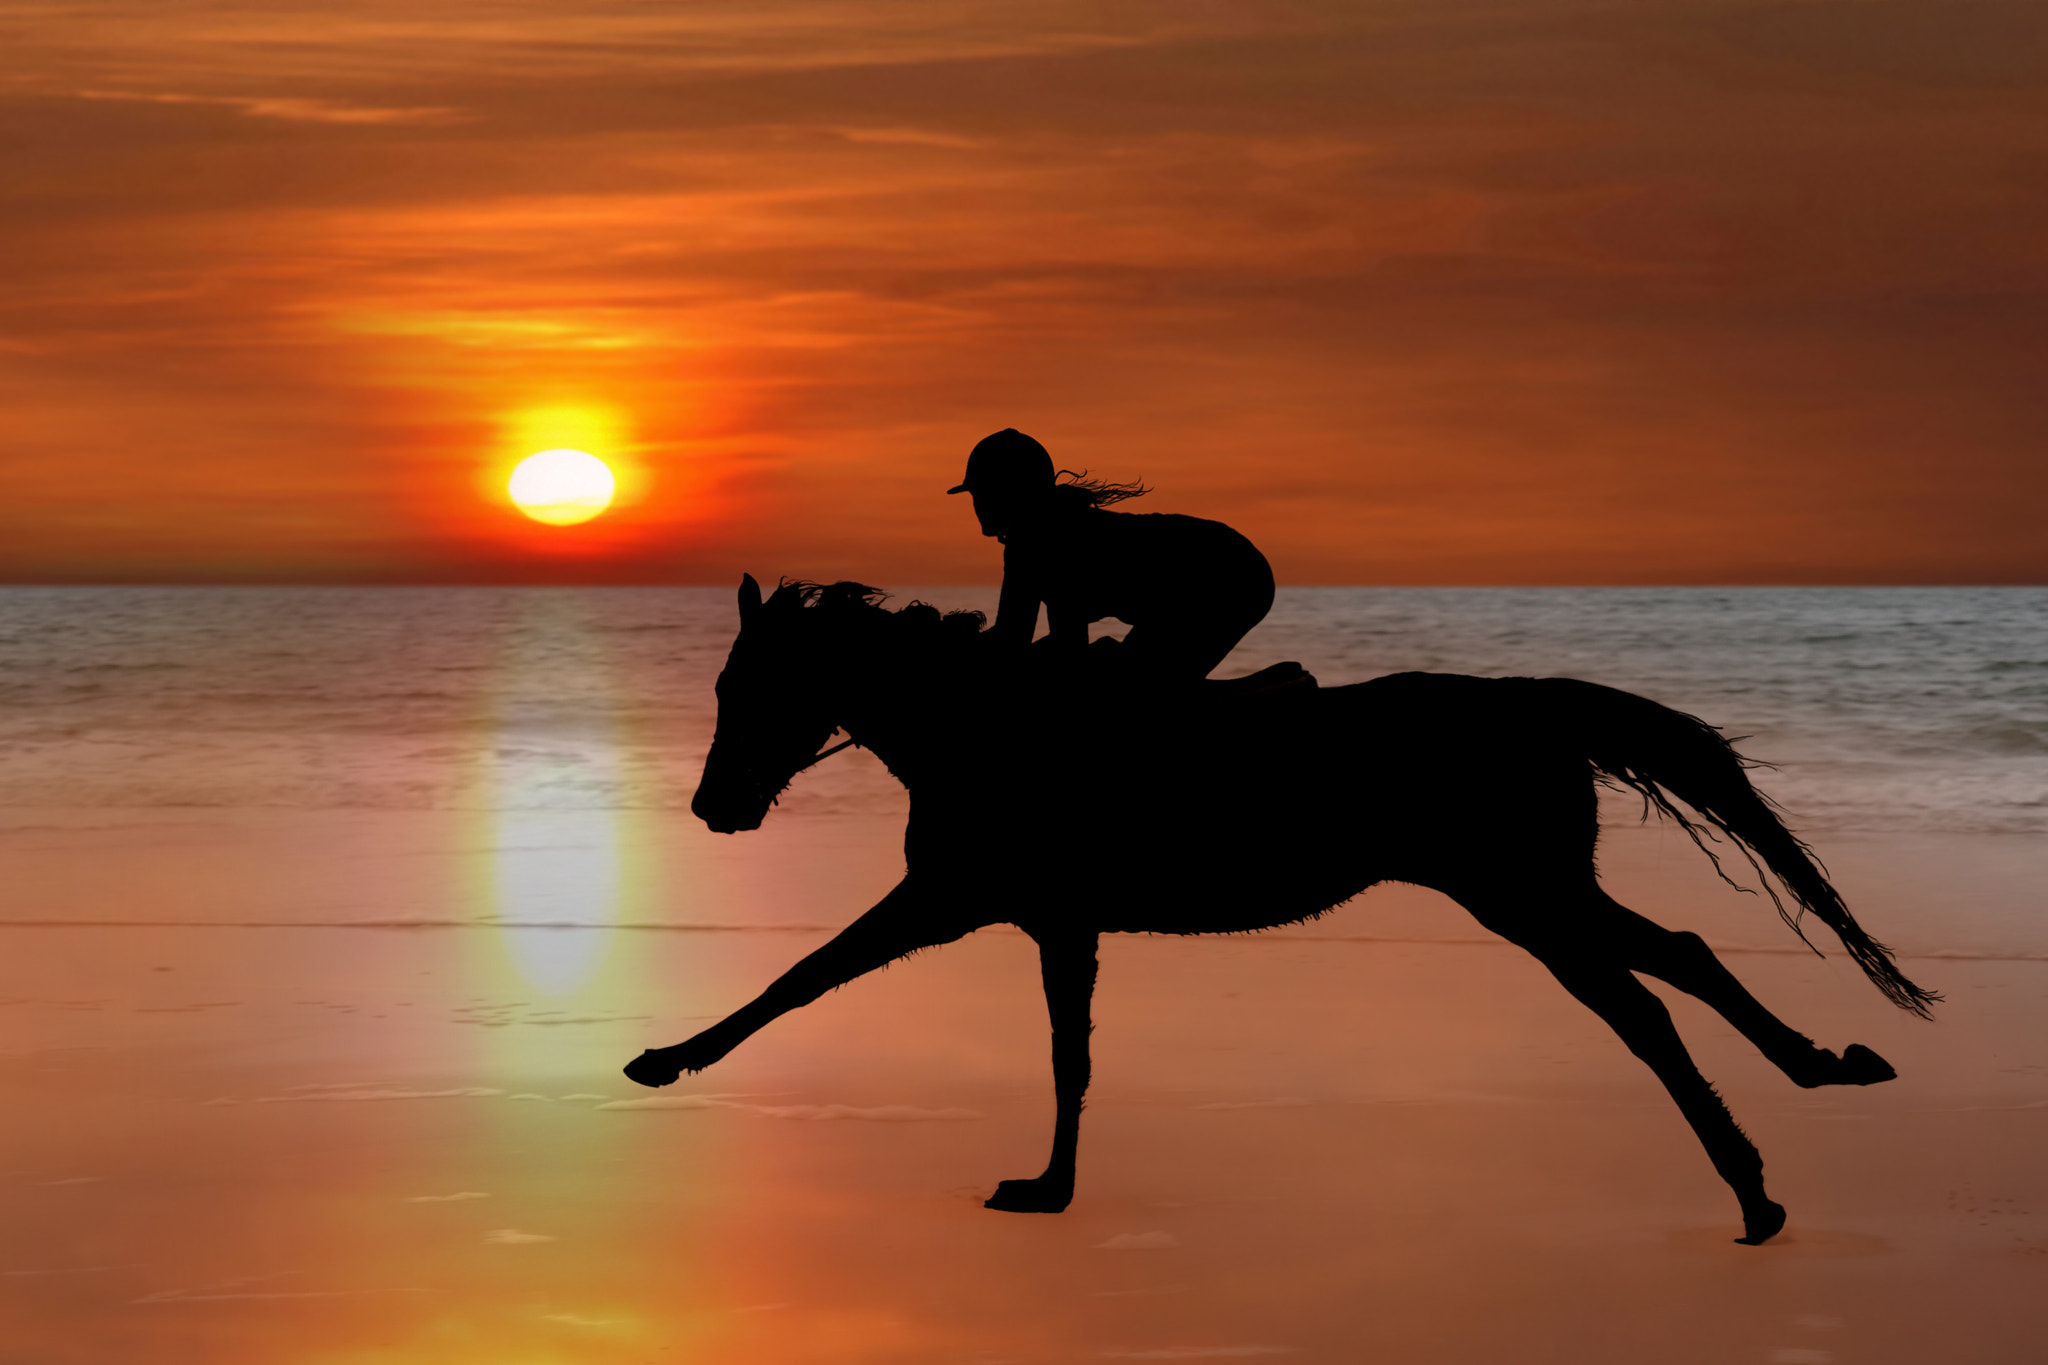 Photograph silhouette of a horse and rider galloping on beach by David Morrison on 500px